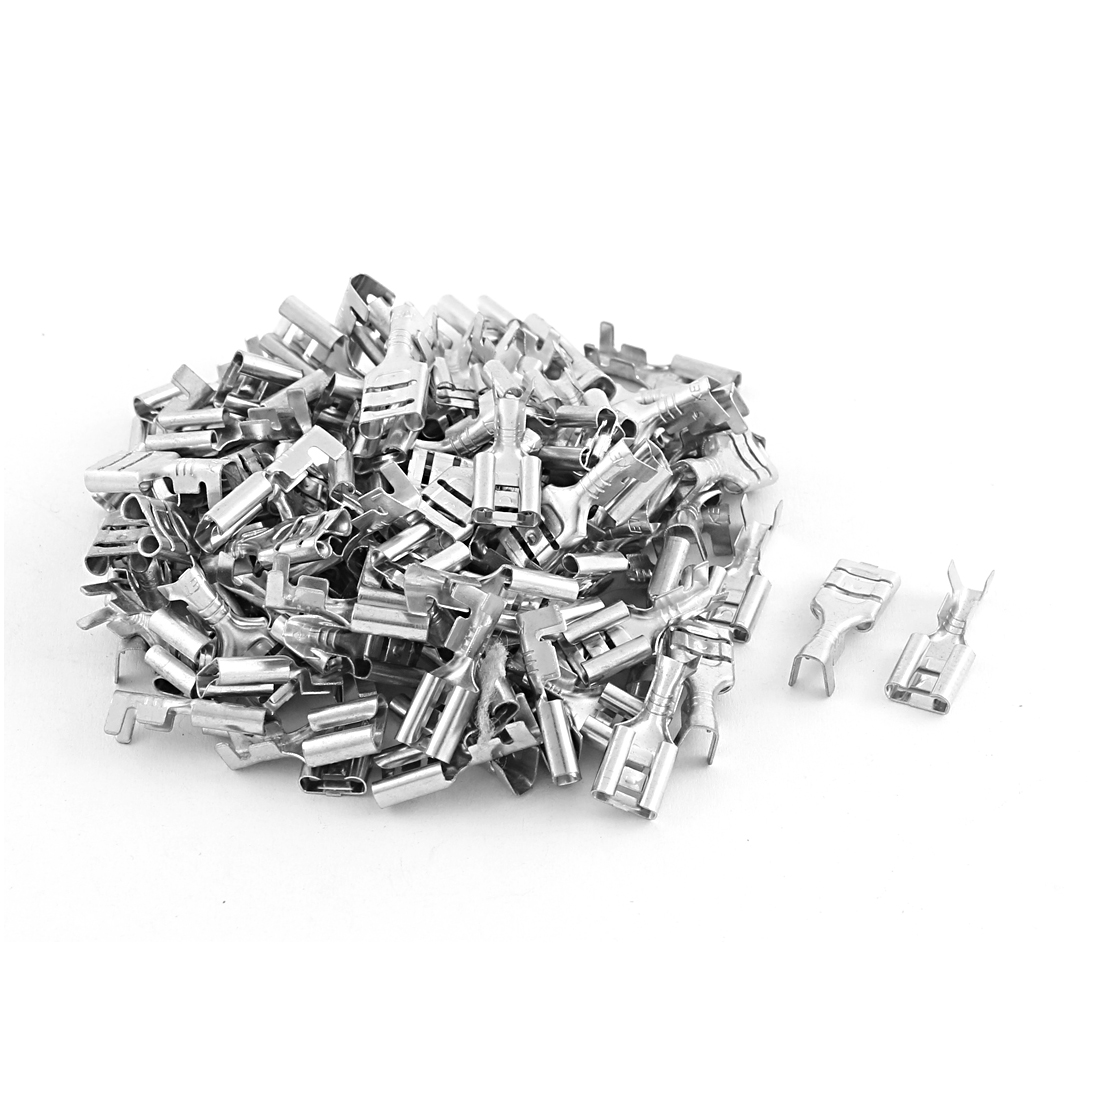 100 Pcs Electronic Components 6.3mm Non-Insulated Spade Female Terminals